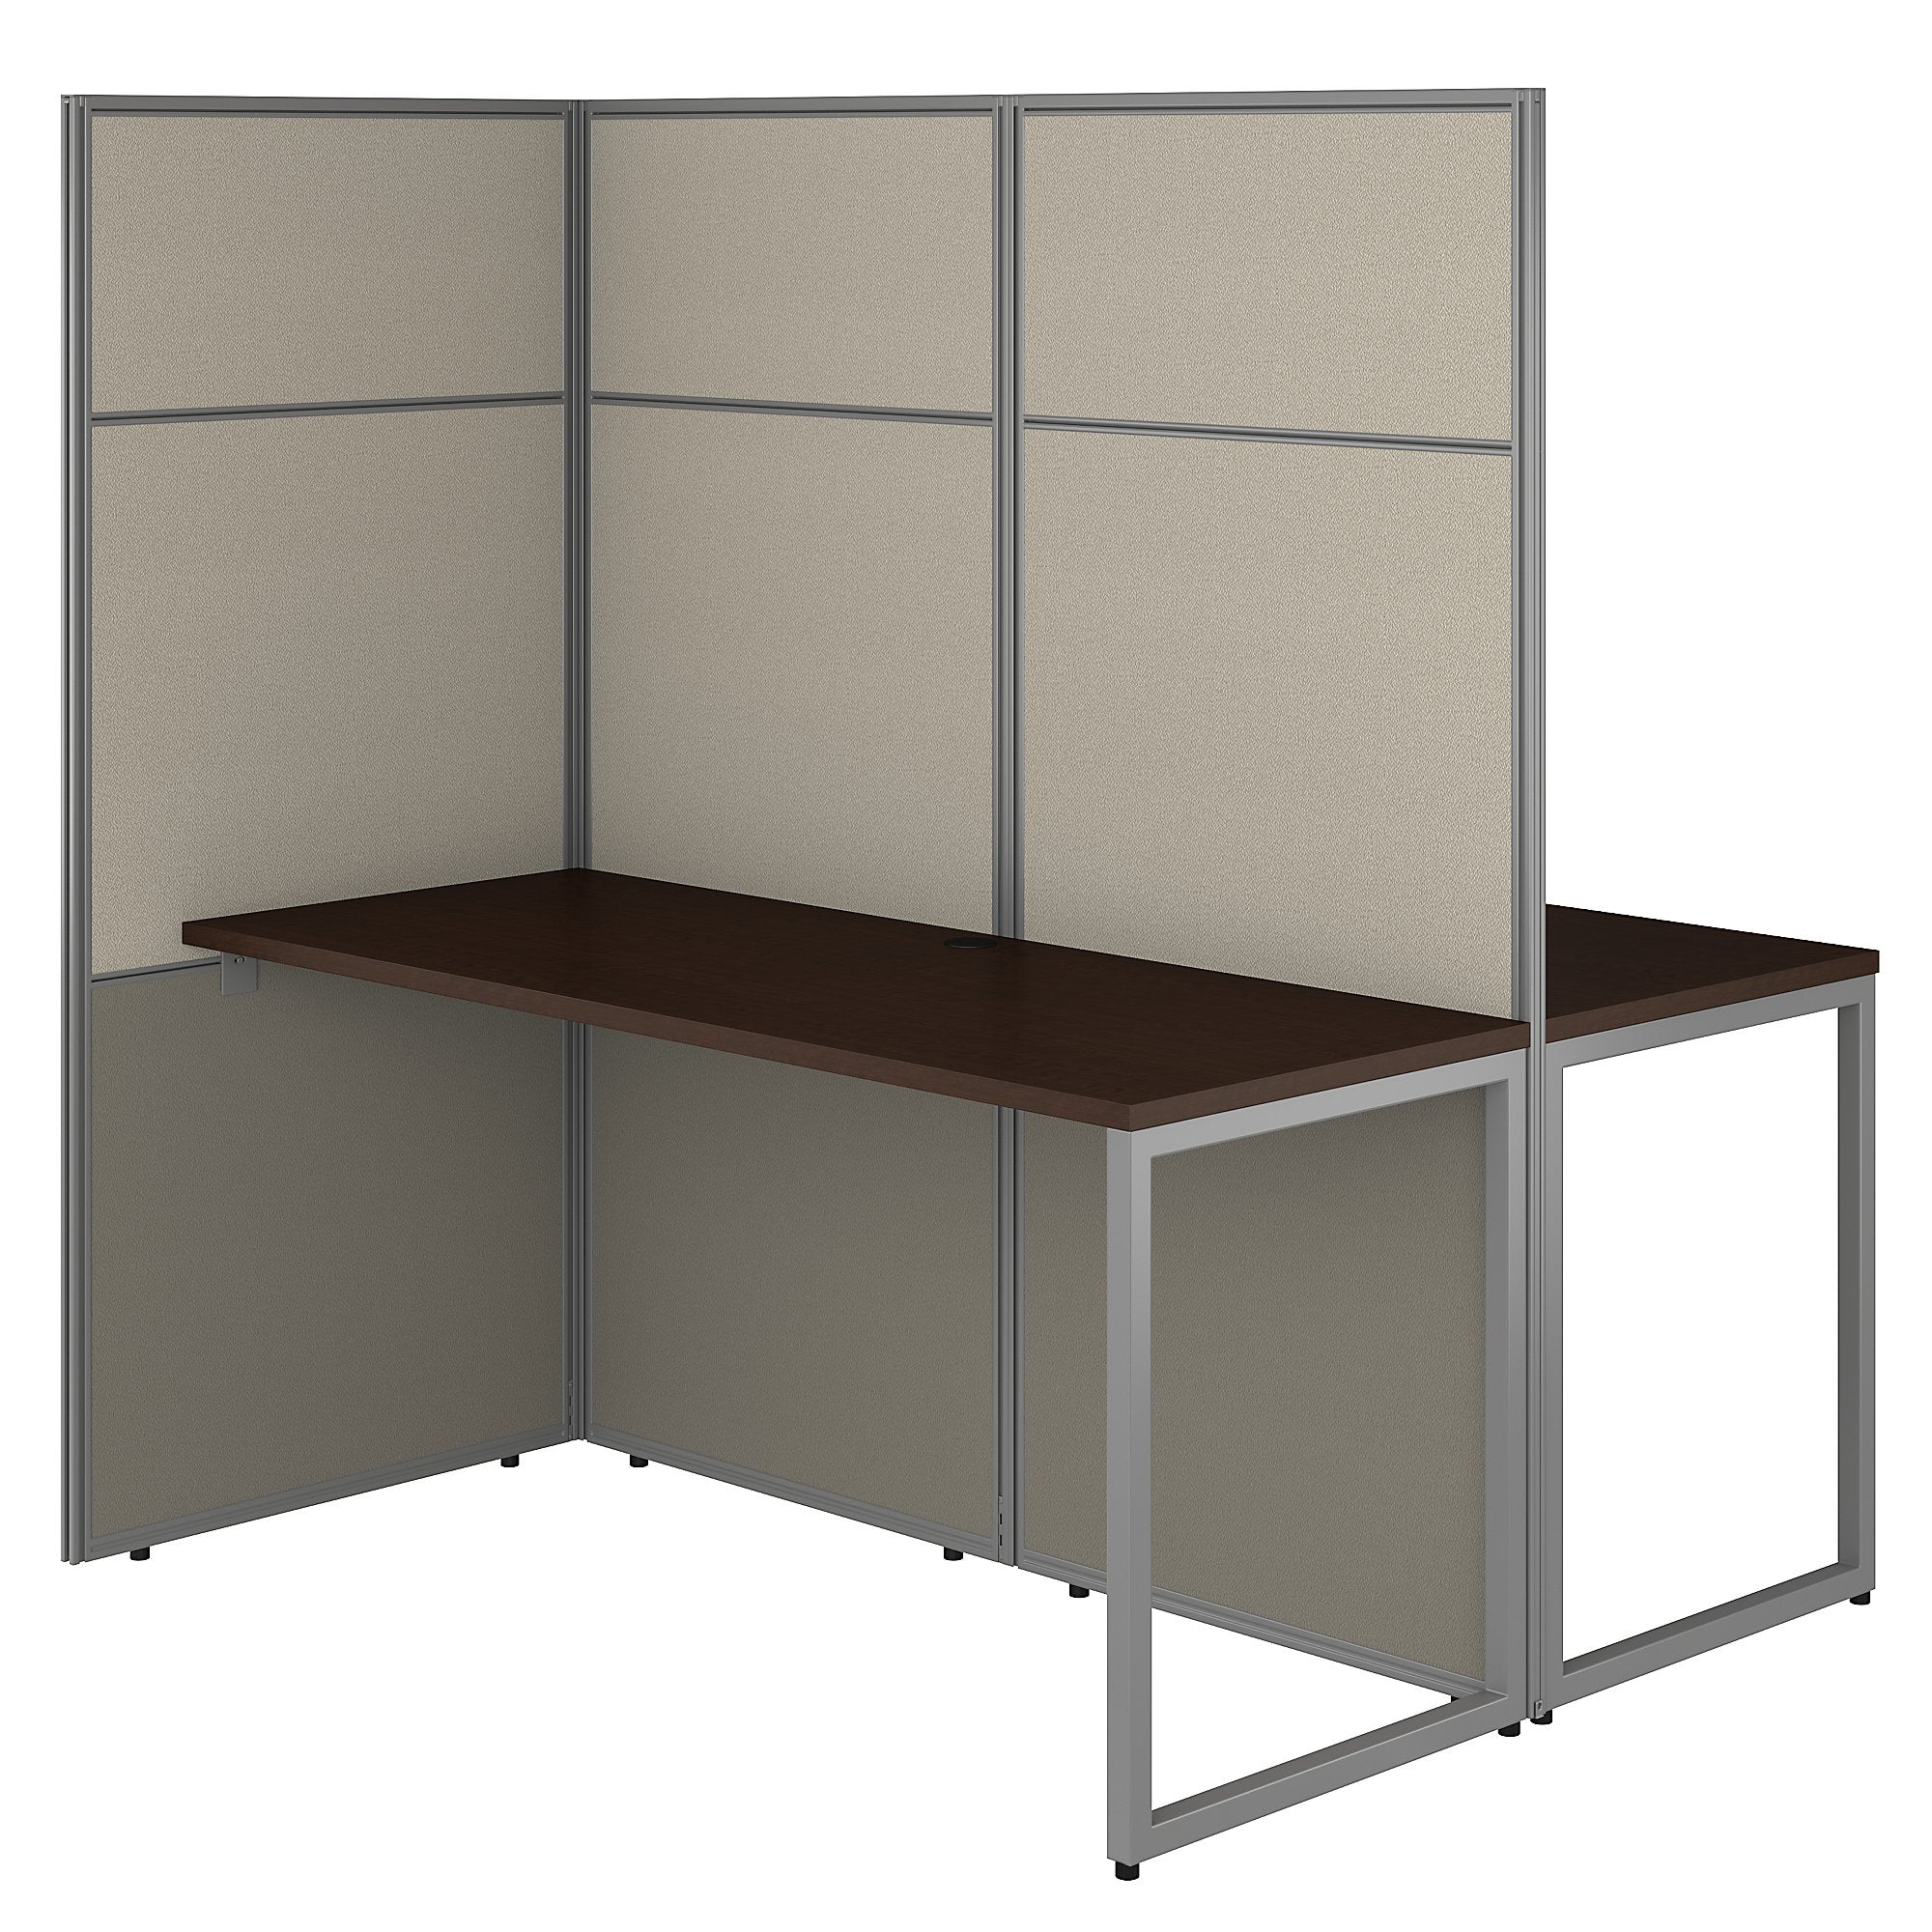 Bush Business Furniture Easy Office 60W 2 Person Cubicle Desk Workstation with 66H Panels | Mocha Cherry